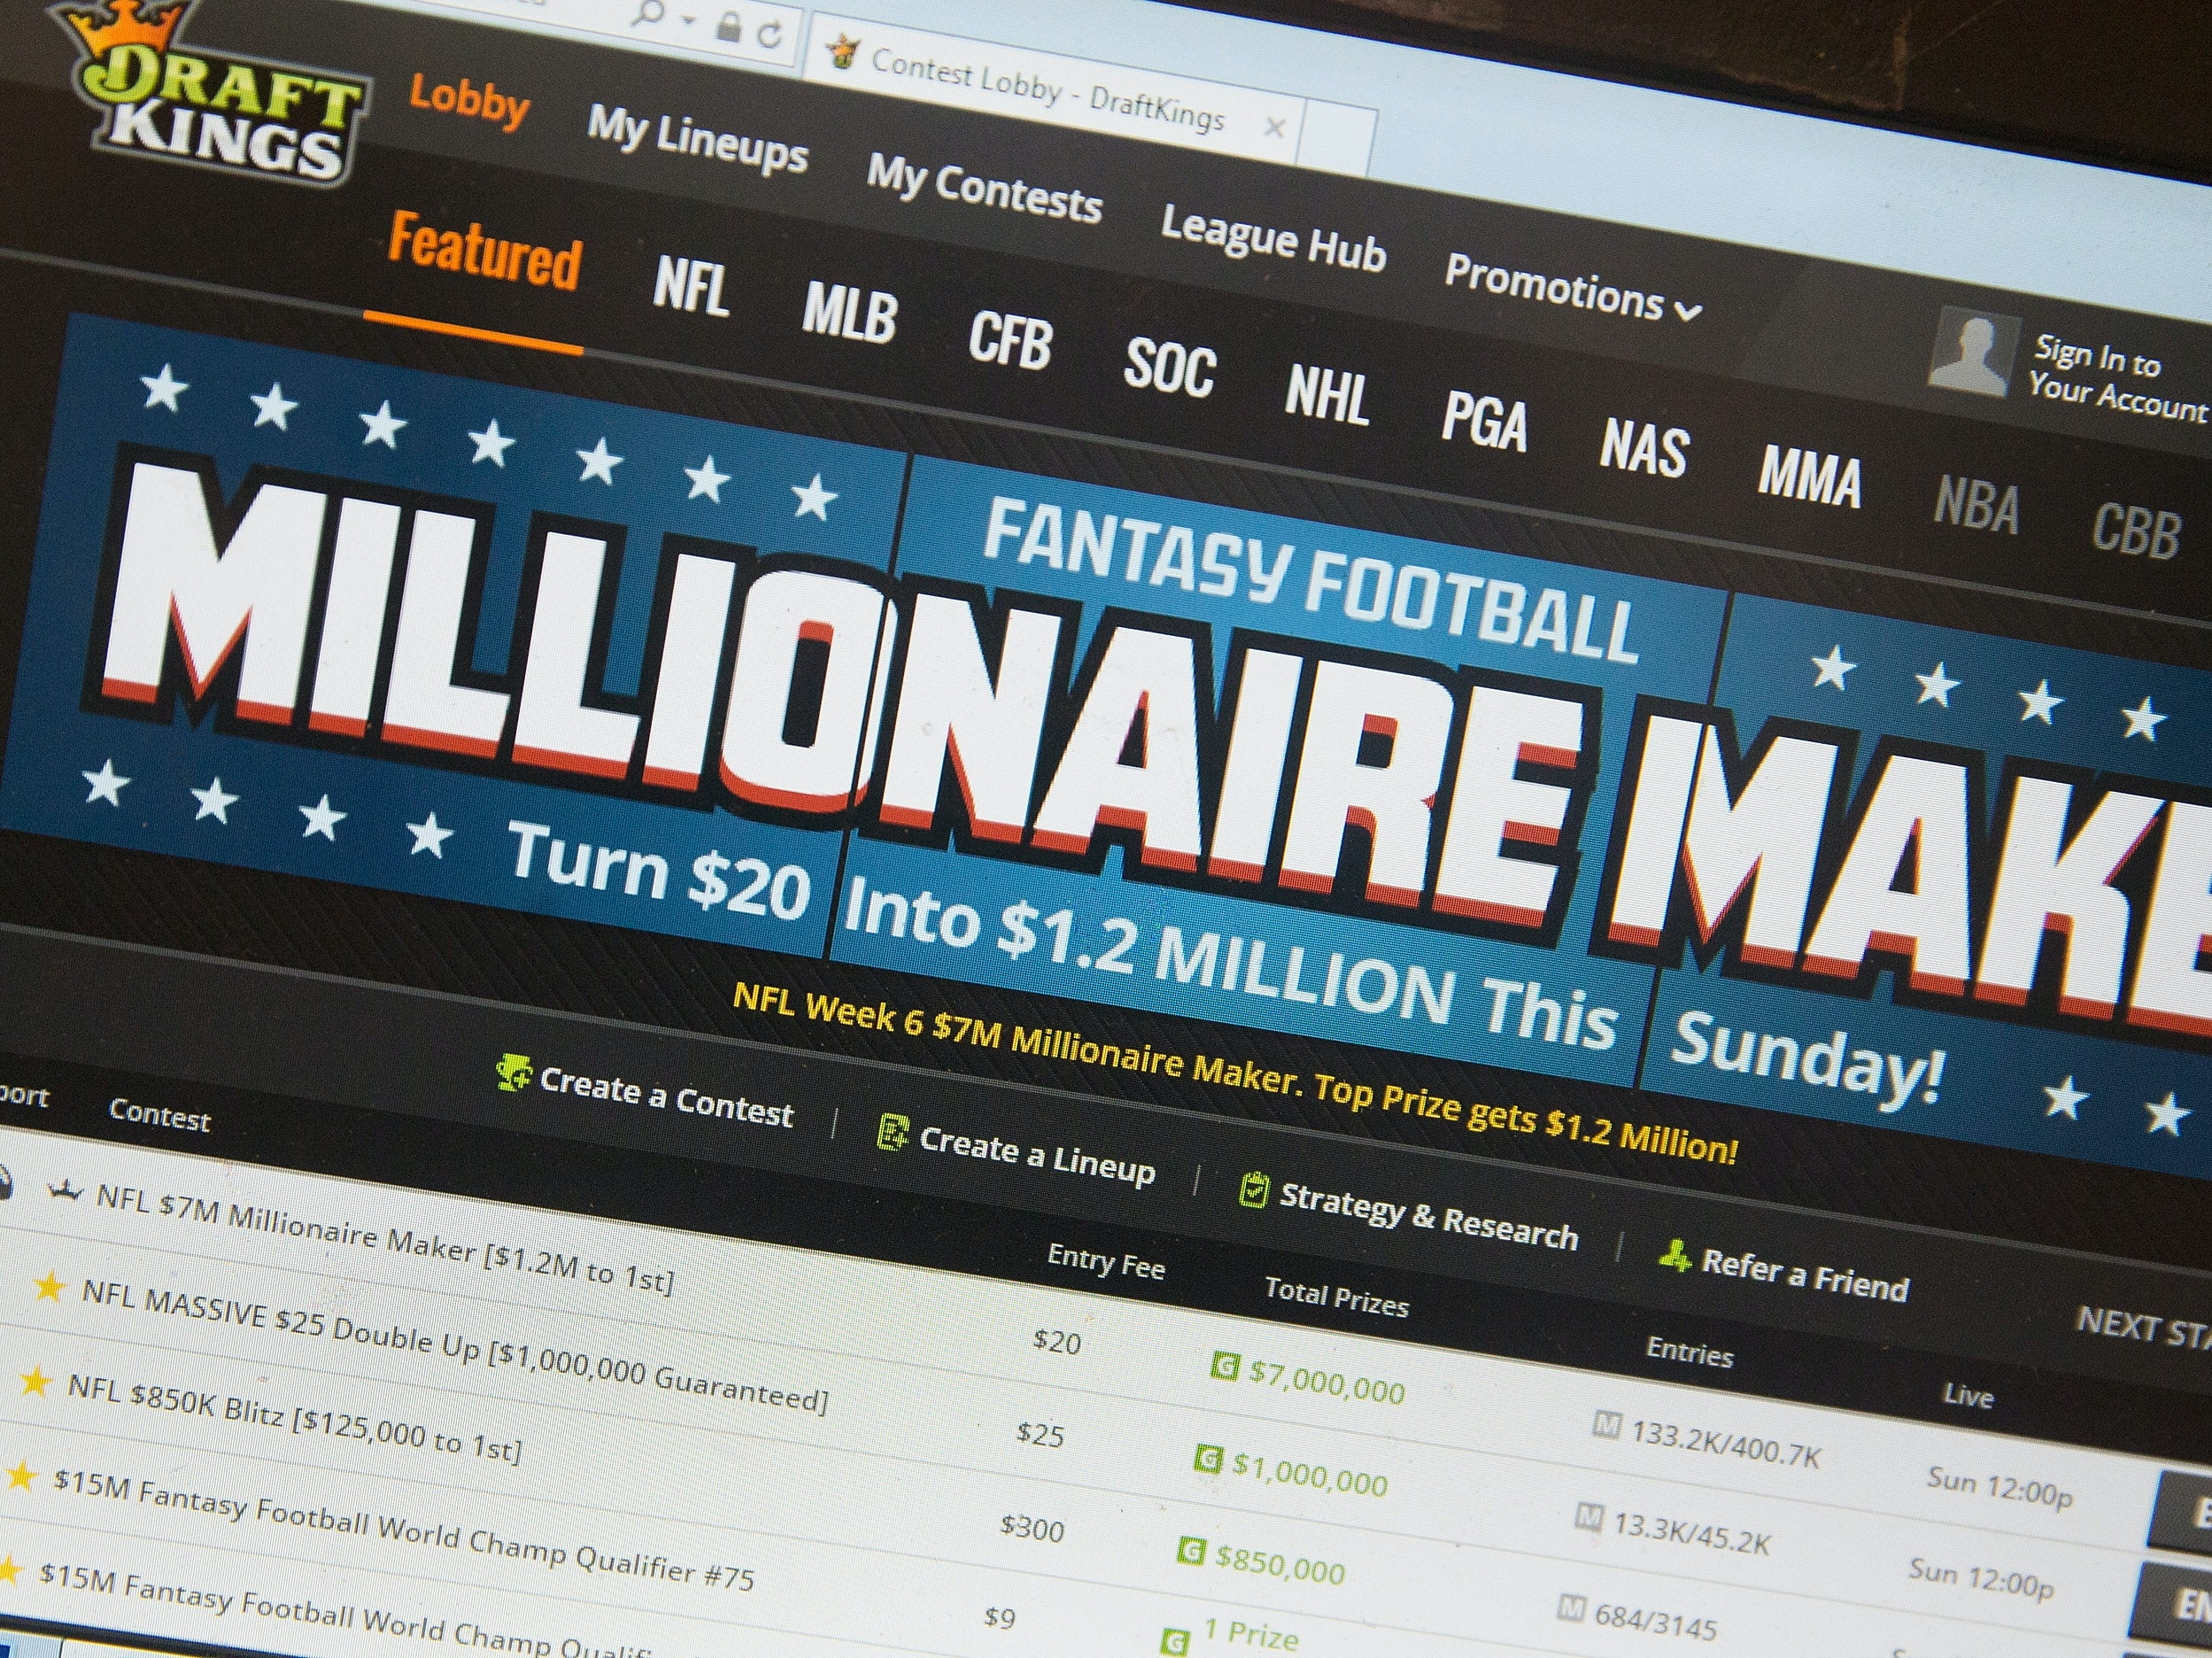 Watch 'The New York Times' and PBS Blow the Lid Off Fantasy Sports Gambling